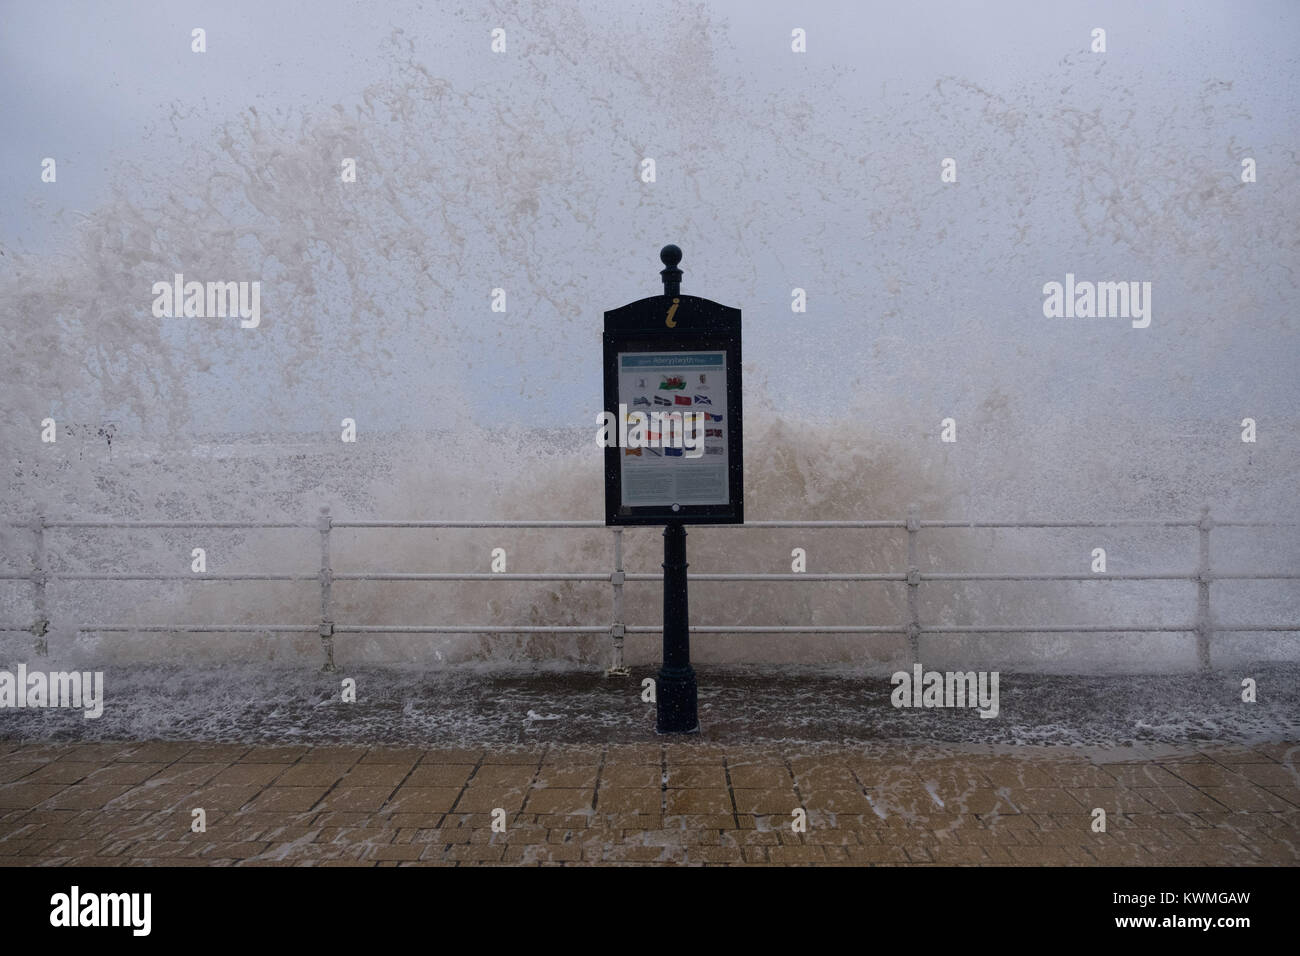 Aberystwyth Wales UK, Wednesday 04 January 2018 UK Weather : On the day after Storm Eleanor swept a trail of damage - Stock Image